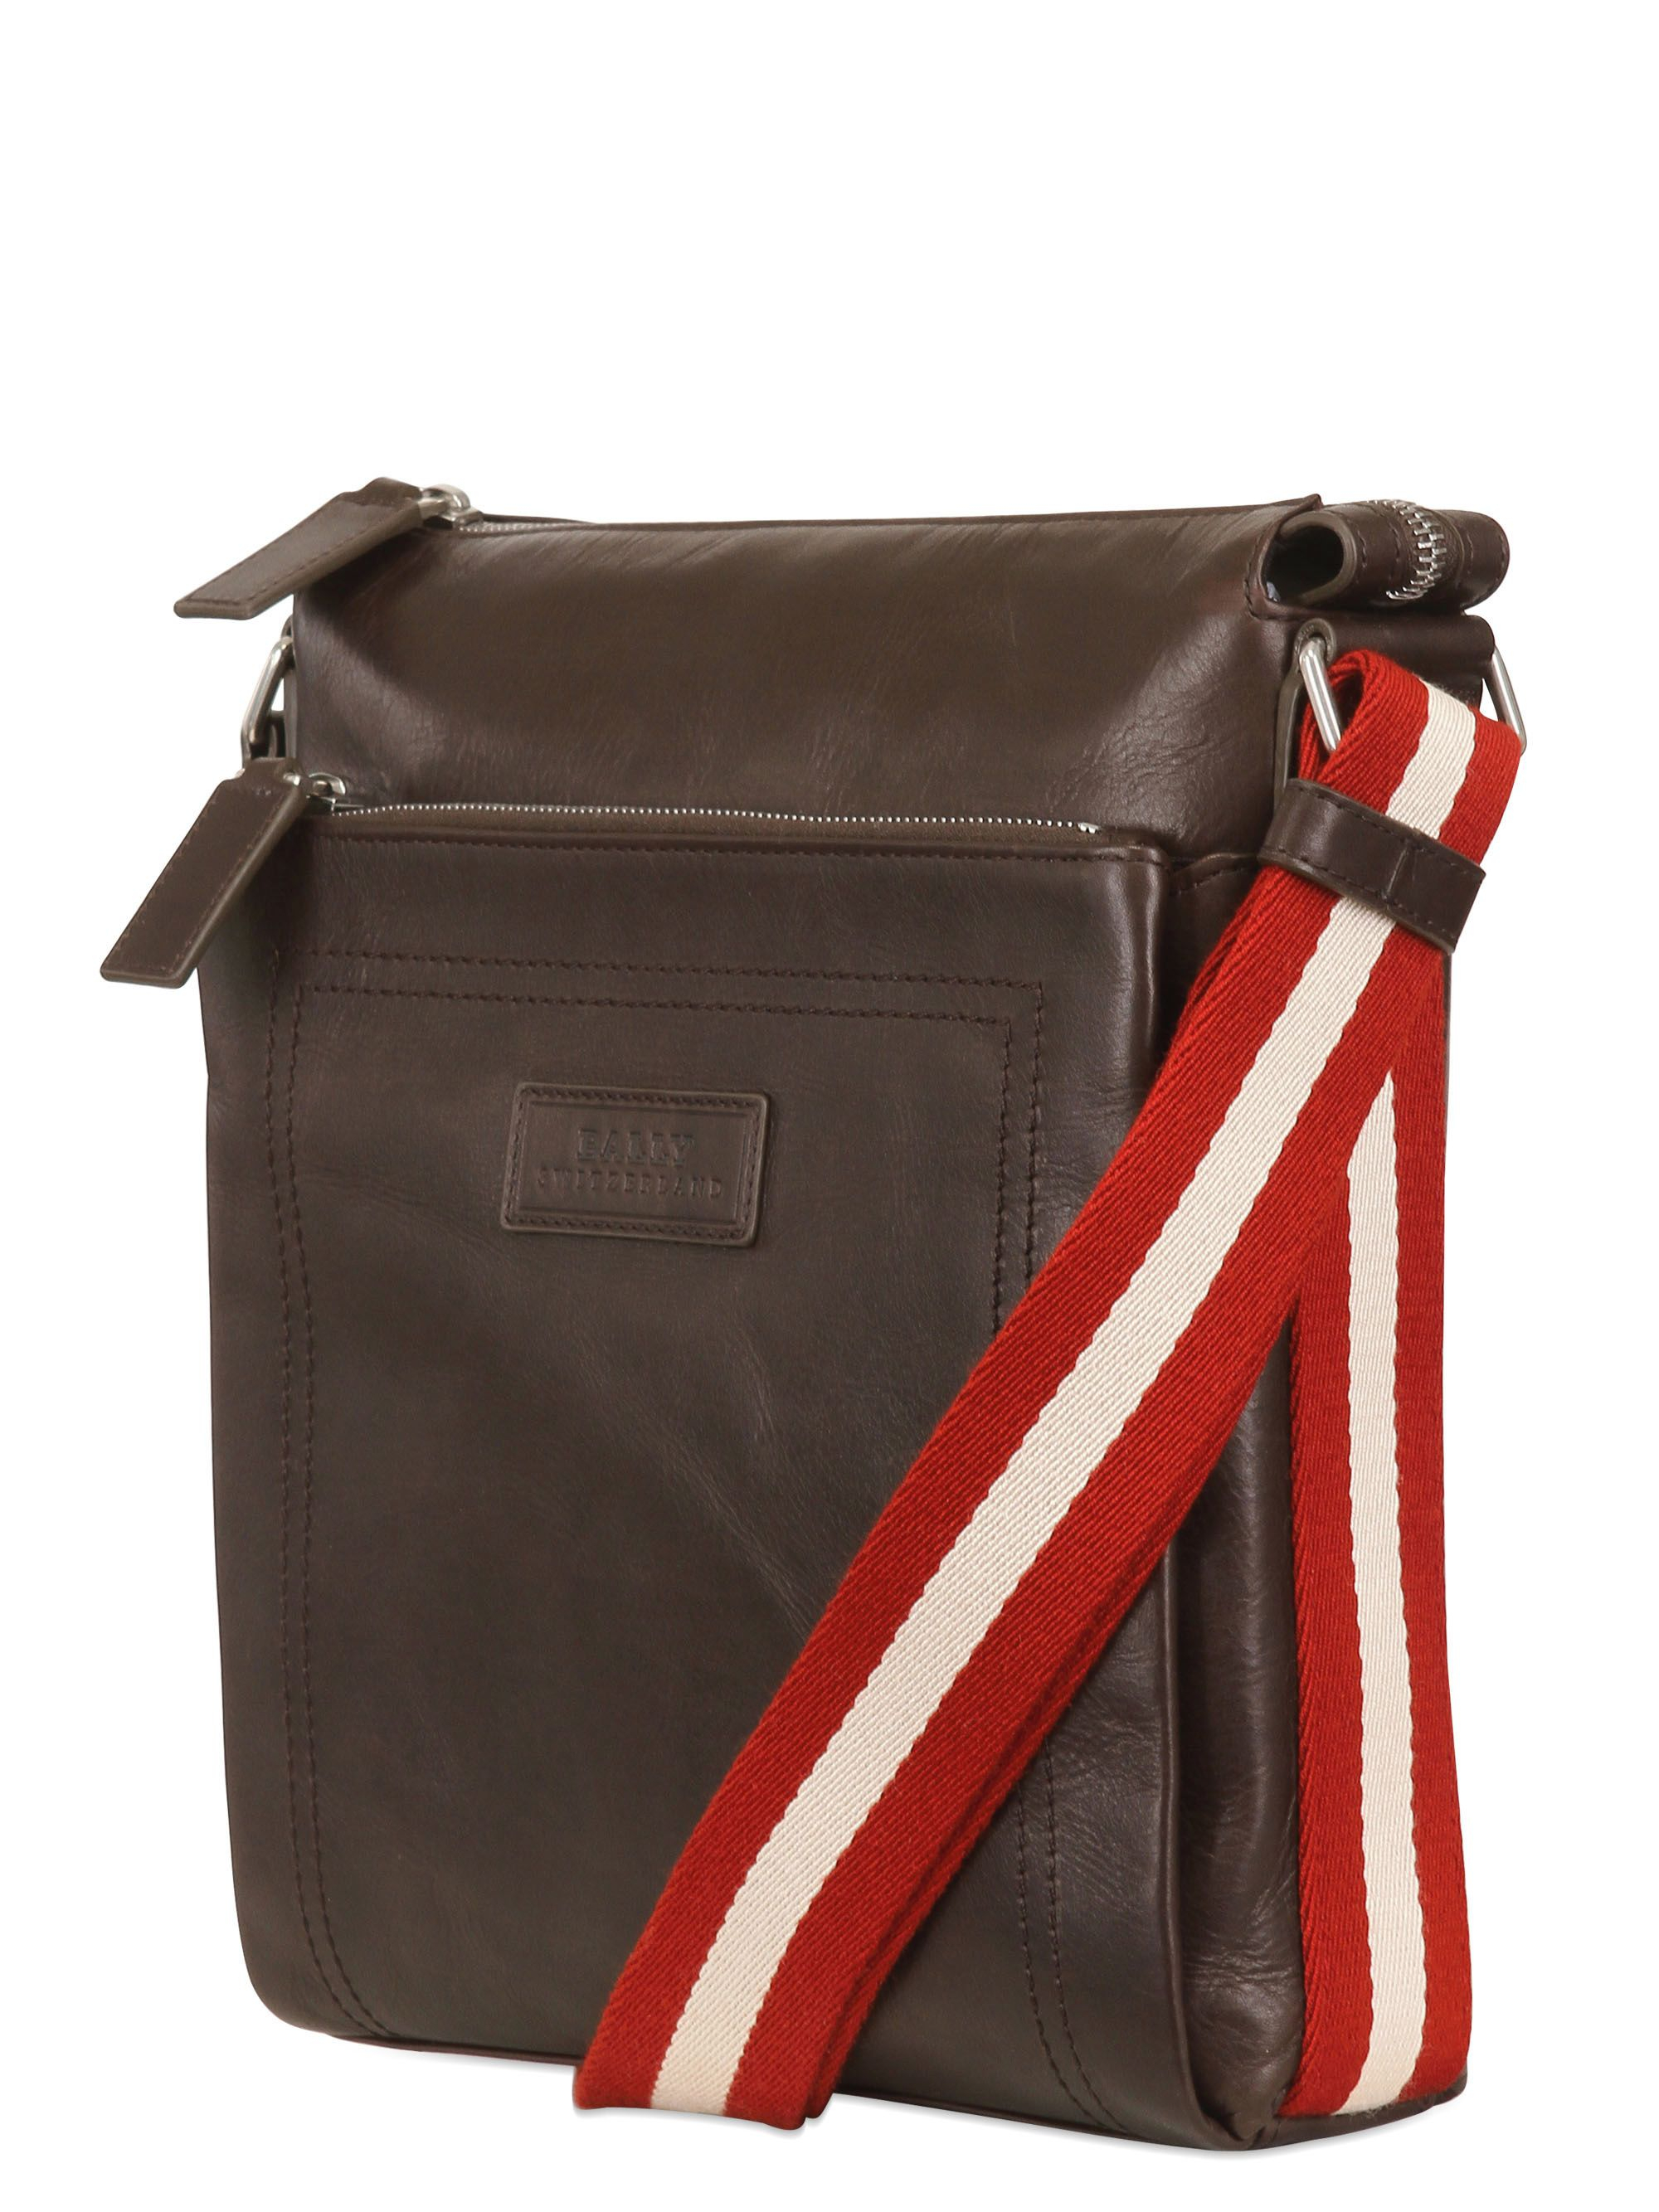 bally leather crossbody bag in brown